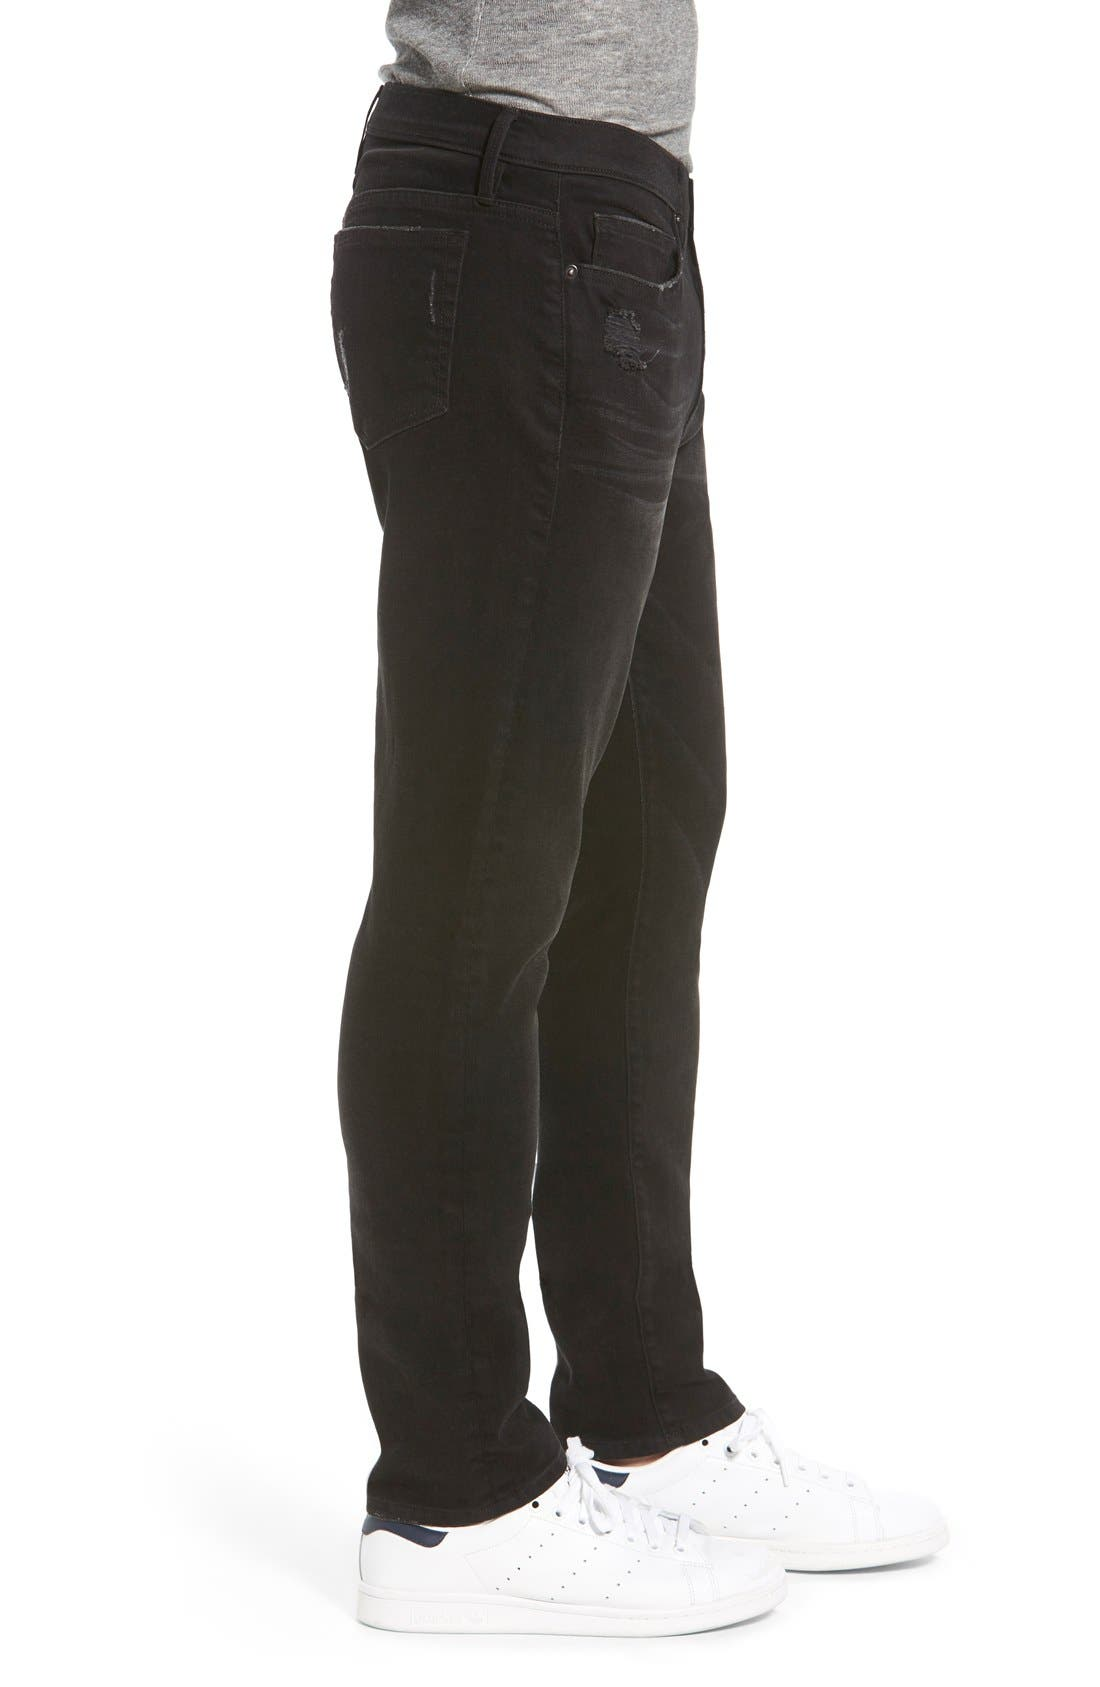 'L'Homme' Slim Fit Jeans,                             Alternate thumbnail 3, color,                             Chimney Rock